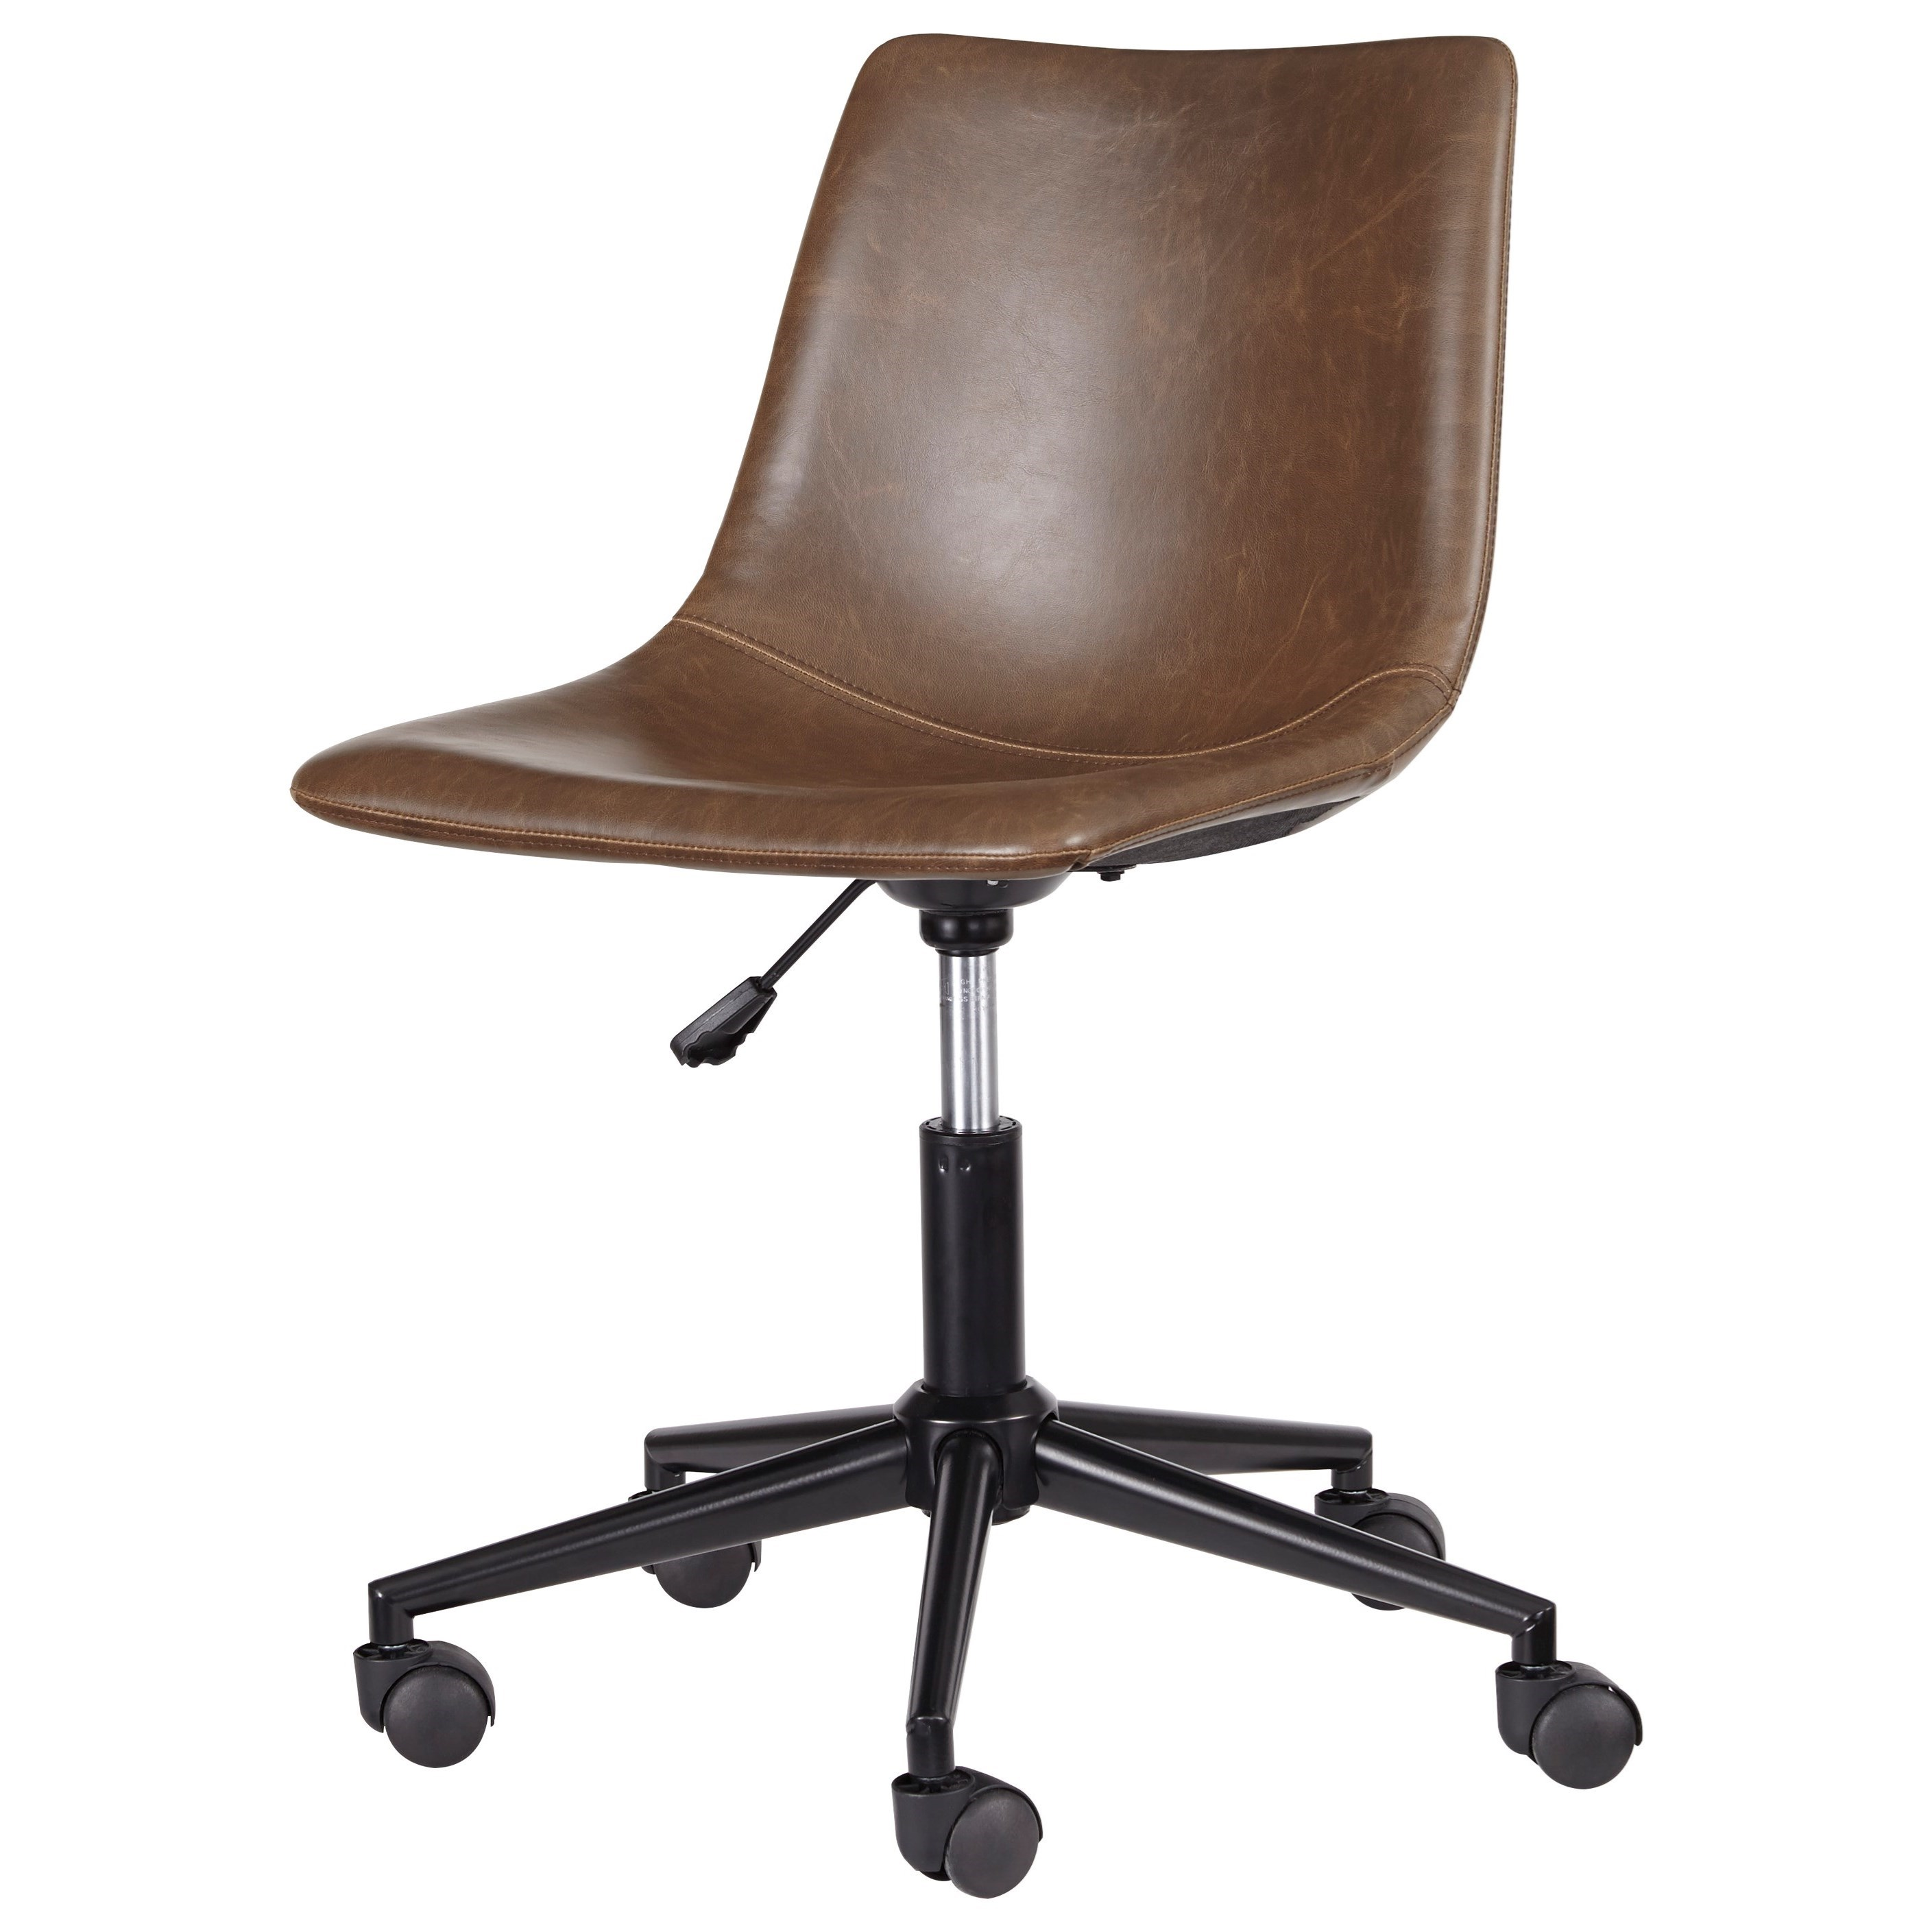 Home Office Desk Chair Signature Design By Ashley Office Chair Program H200 01